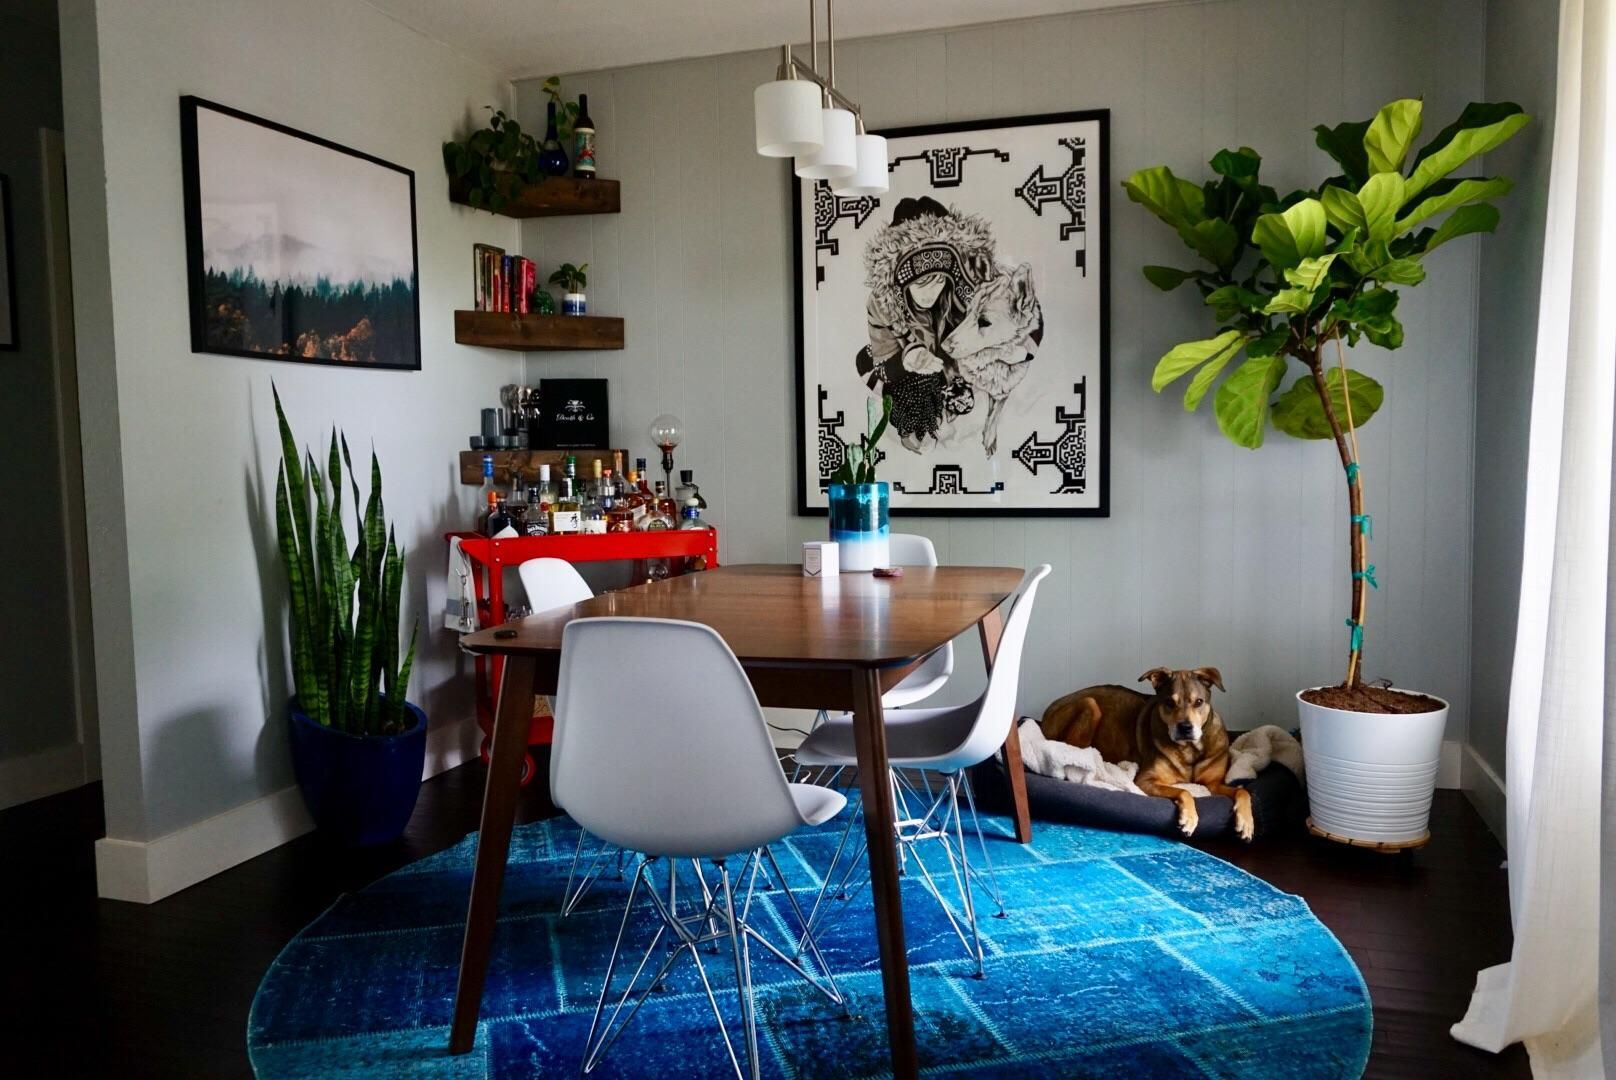 Why this got pinned That snake plant, round rug, bright